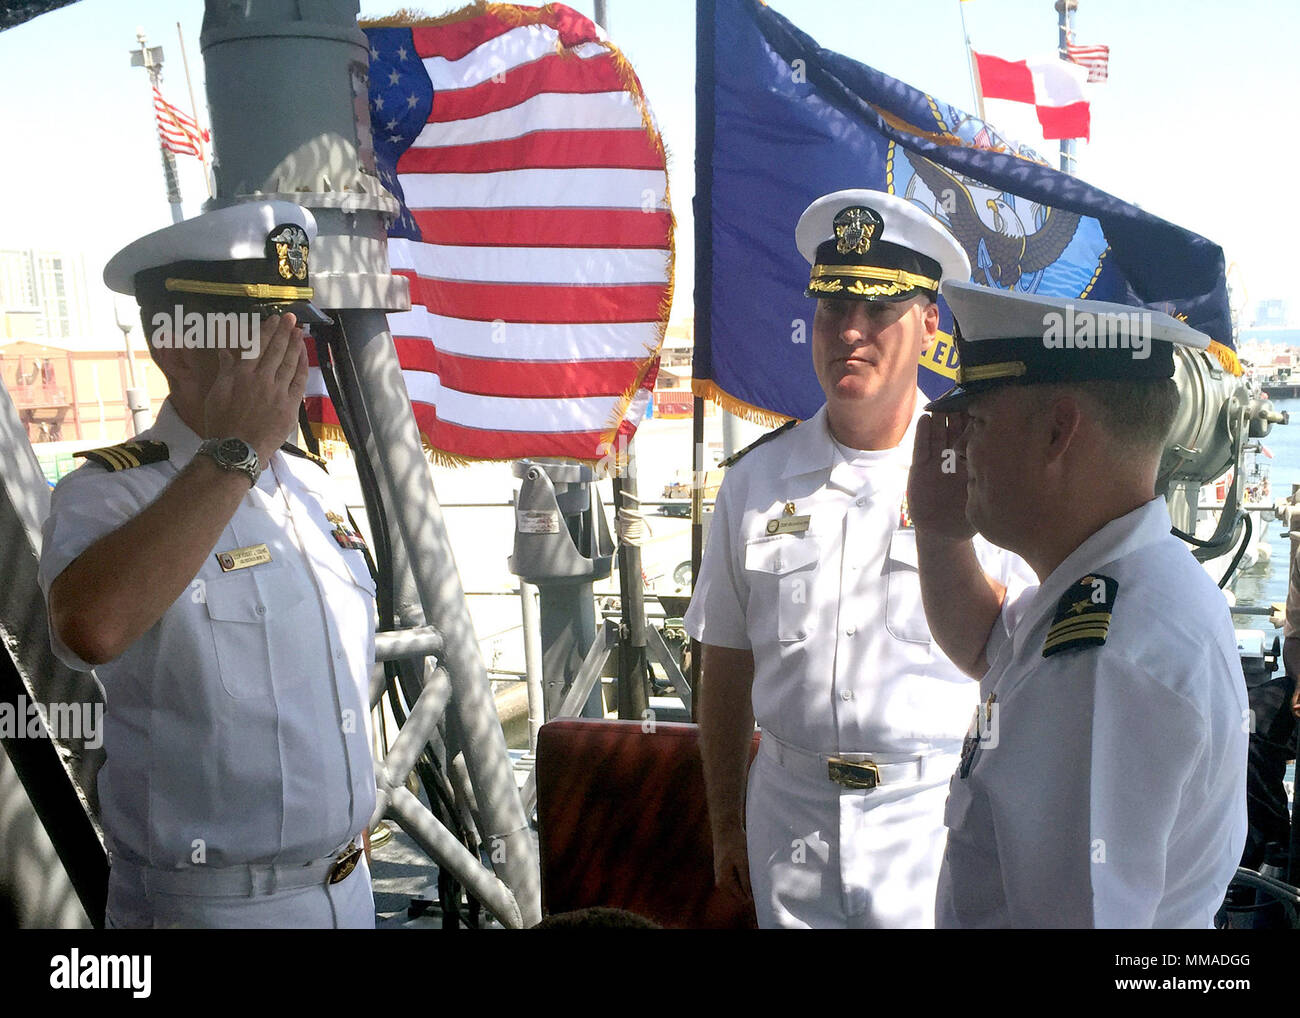 171002-N-PV215-095 MANAMA, Bahrain (Oct. 2, 2017) Lt. Cmdr. Robert J. Toohig Jr., left, relieves Lt. Cmdr. Jeffrey T. Chewning as commanding officer of the Avenger-class mine countermeasures ship USS Dextrous (MCM 13) during a change of command ceremony at Naval Support Activity Bahrain. Dextrous is a part of the newly-commissioned Naval Surface Squadron (CNSS) 5, which serves as the surface type commander's executive agent in Bahrain and provides support to 10 Cyclone-class coastal patrol ships and four Avenger-class mine countermeasures ships. (U.S. photo by Mass Communication Specialist 1st - Stock Image